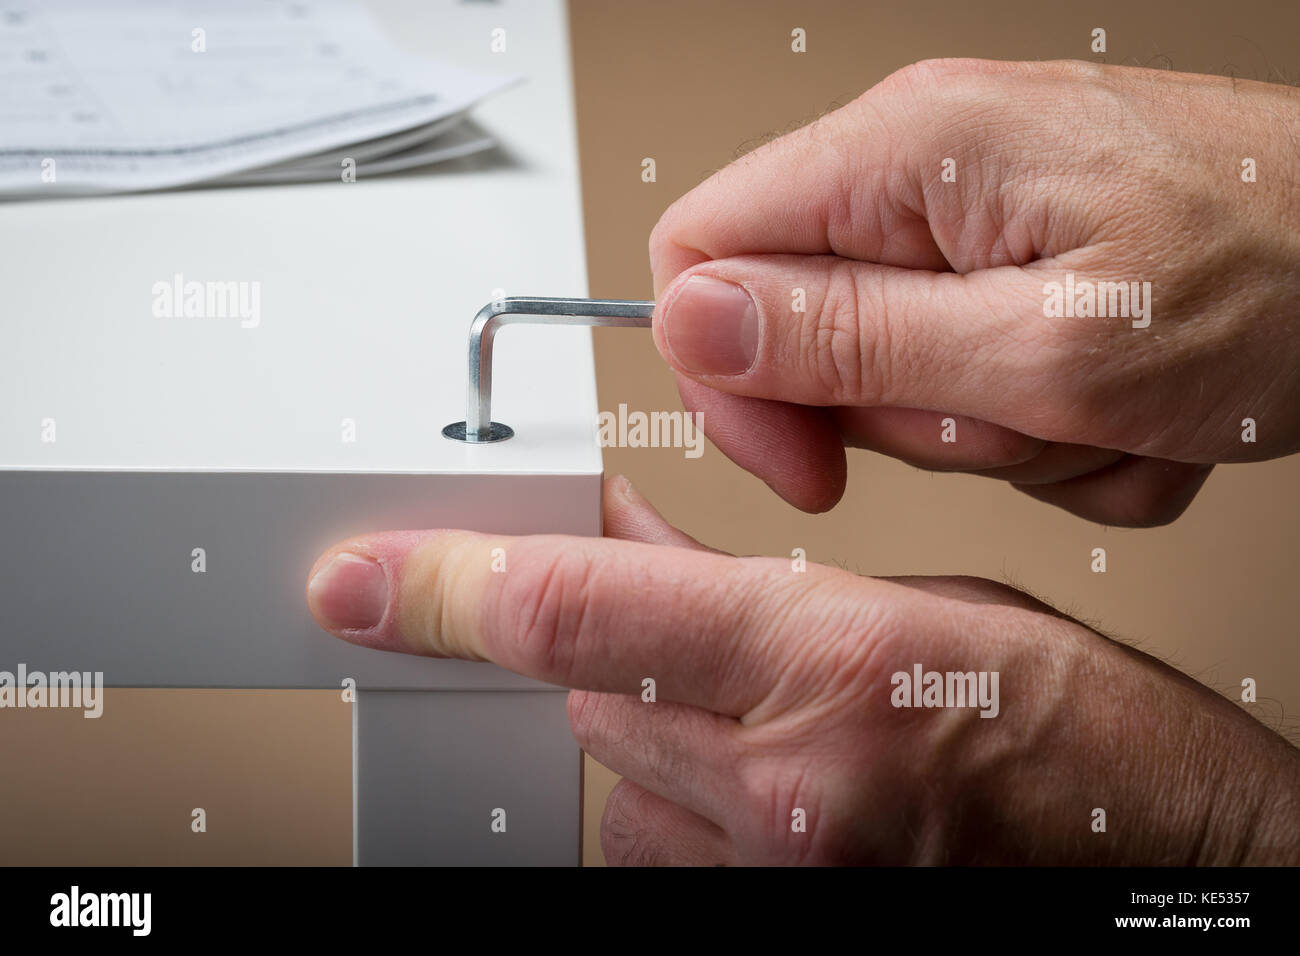 A man building flat pack furniture using an allen Key with the building instructions in the background - Stock Image